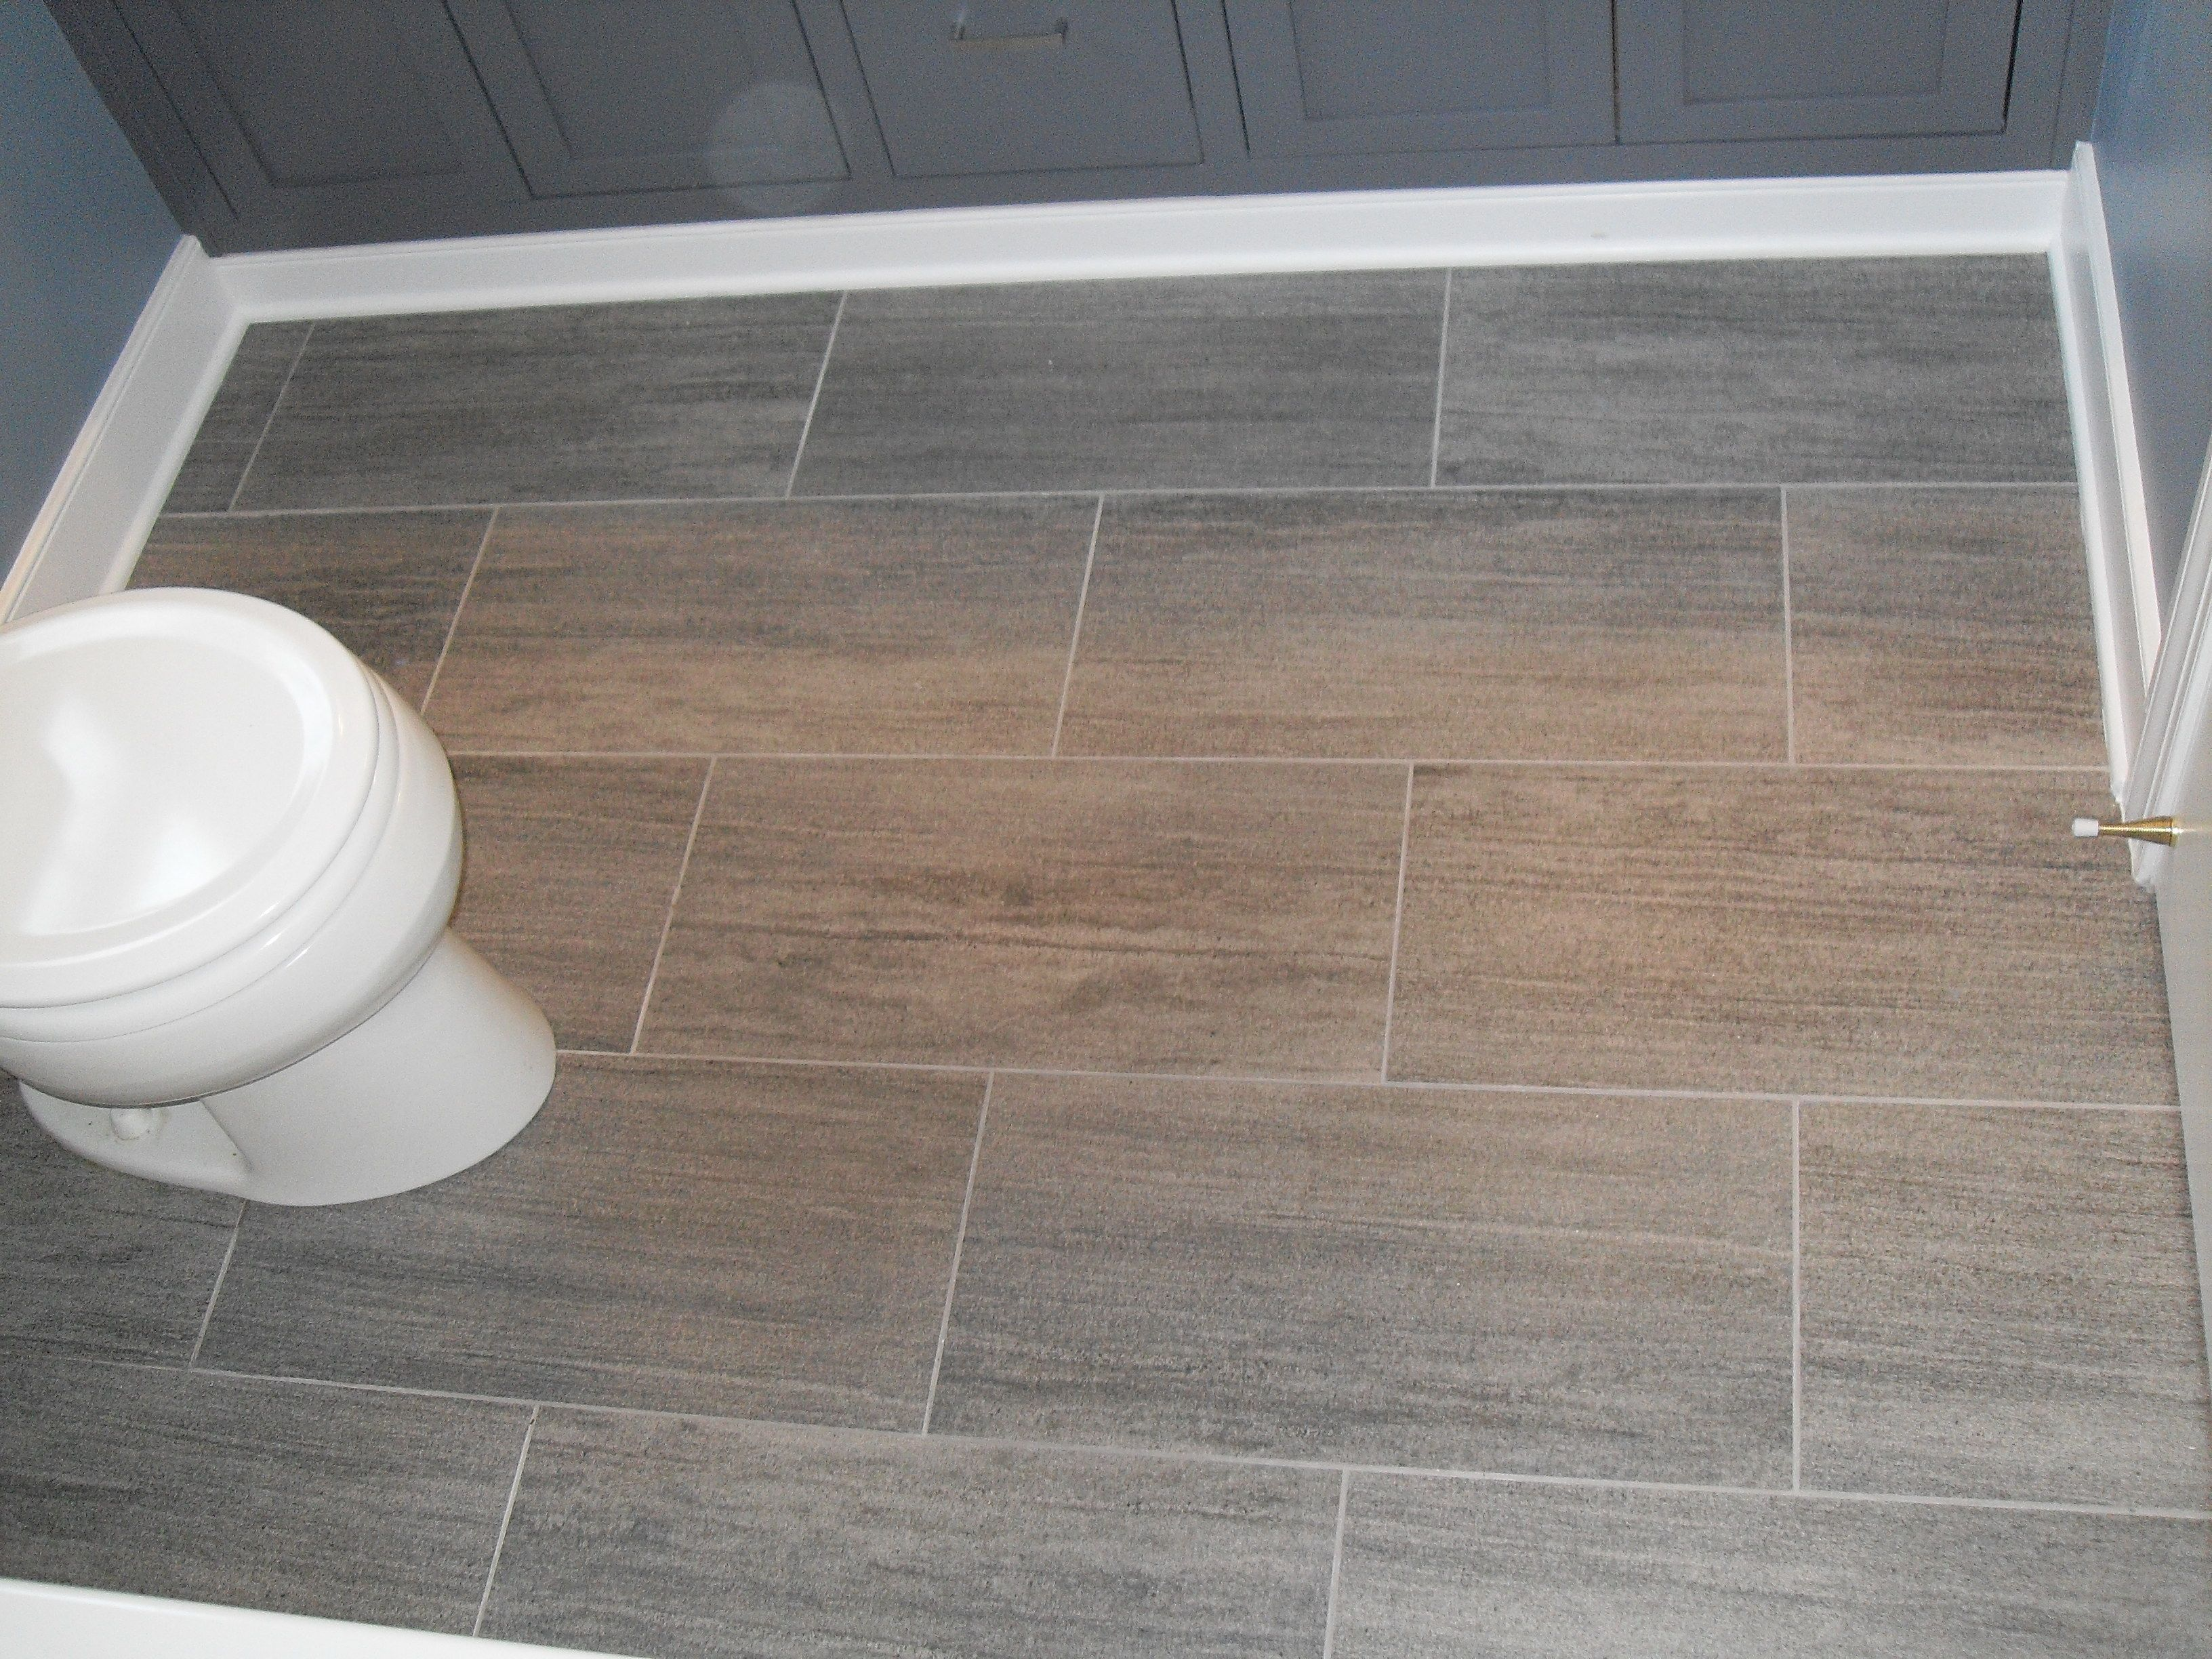 Bathroom Floor Tile Designs The Bathroom Floor Tile Ideas With Grey Porcelain Floor And